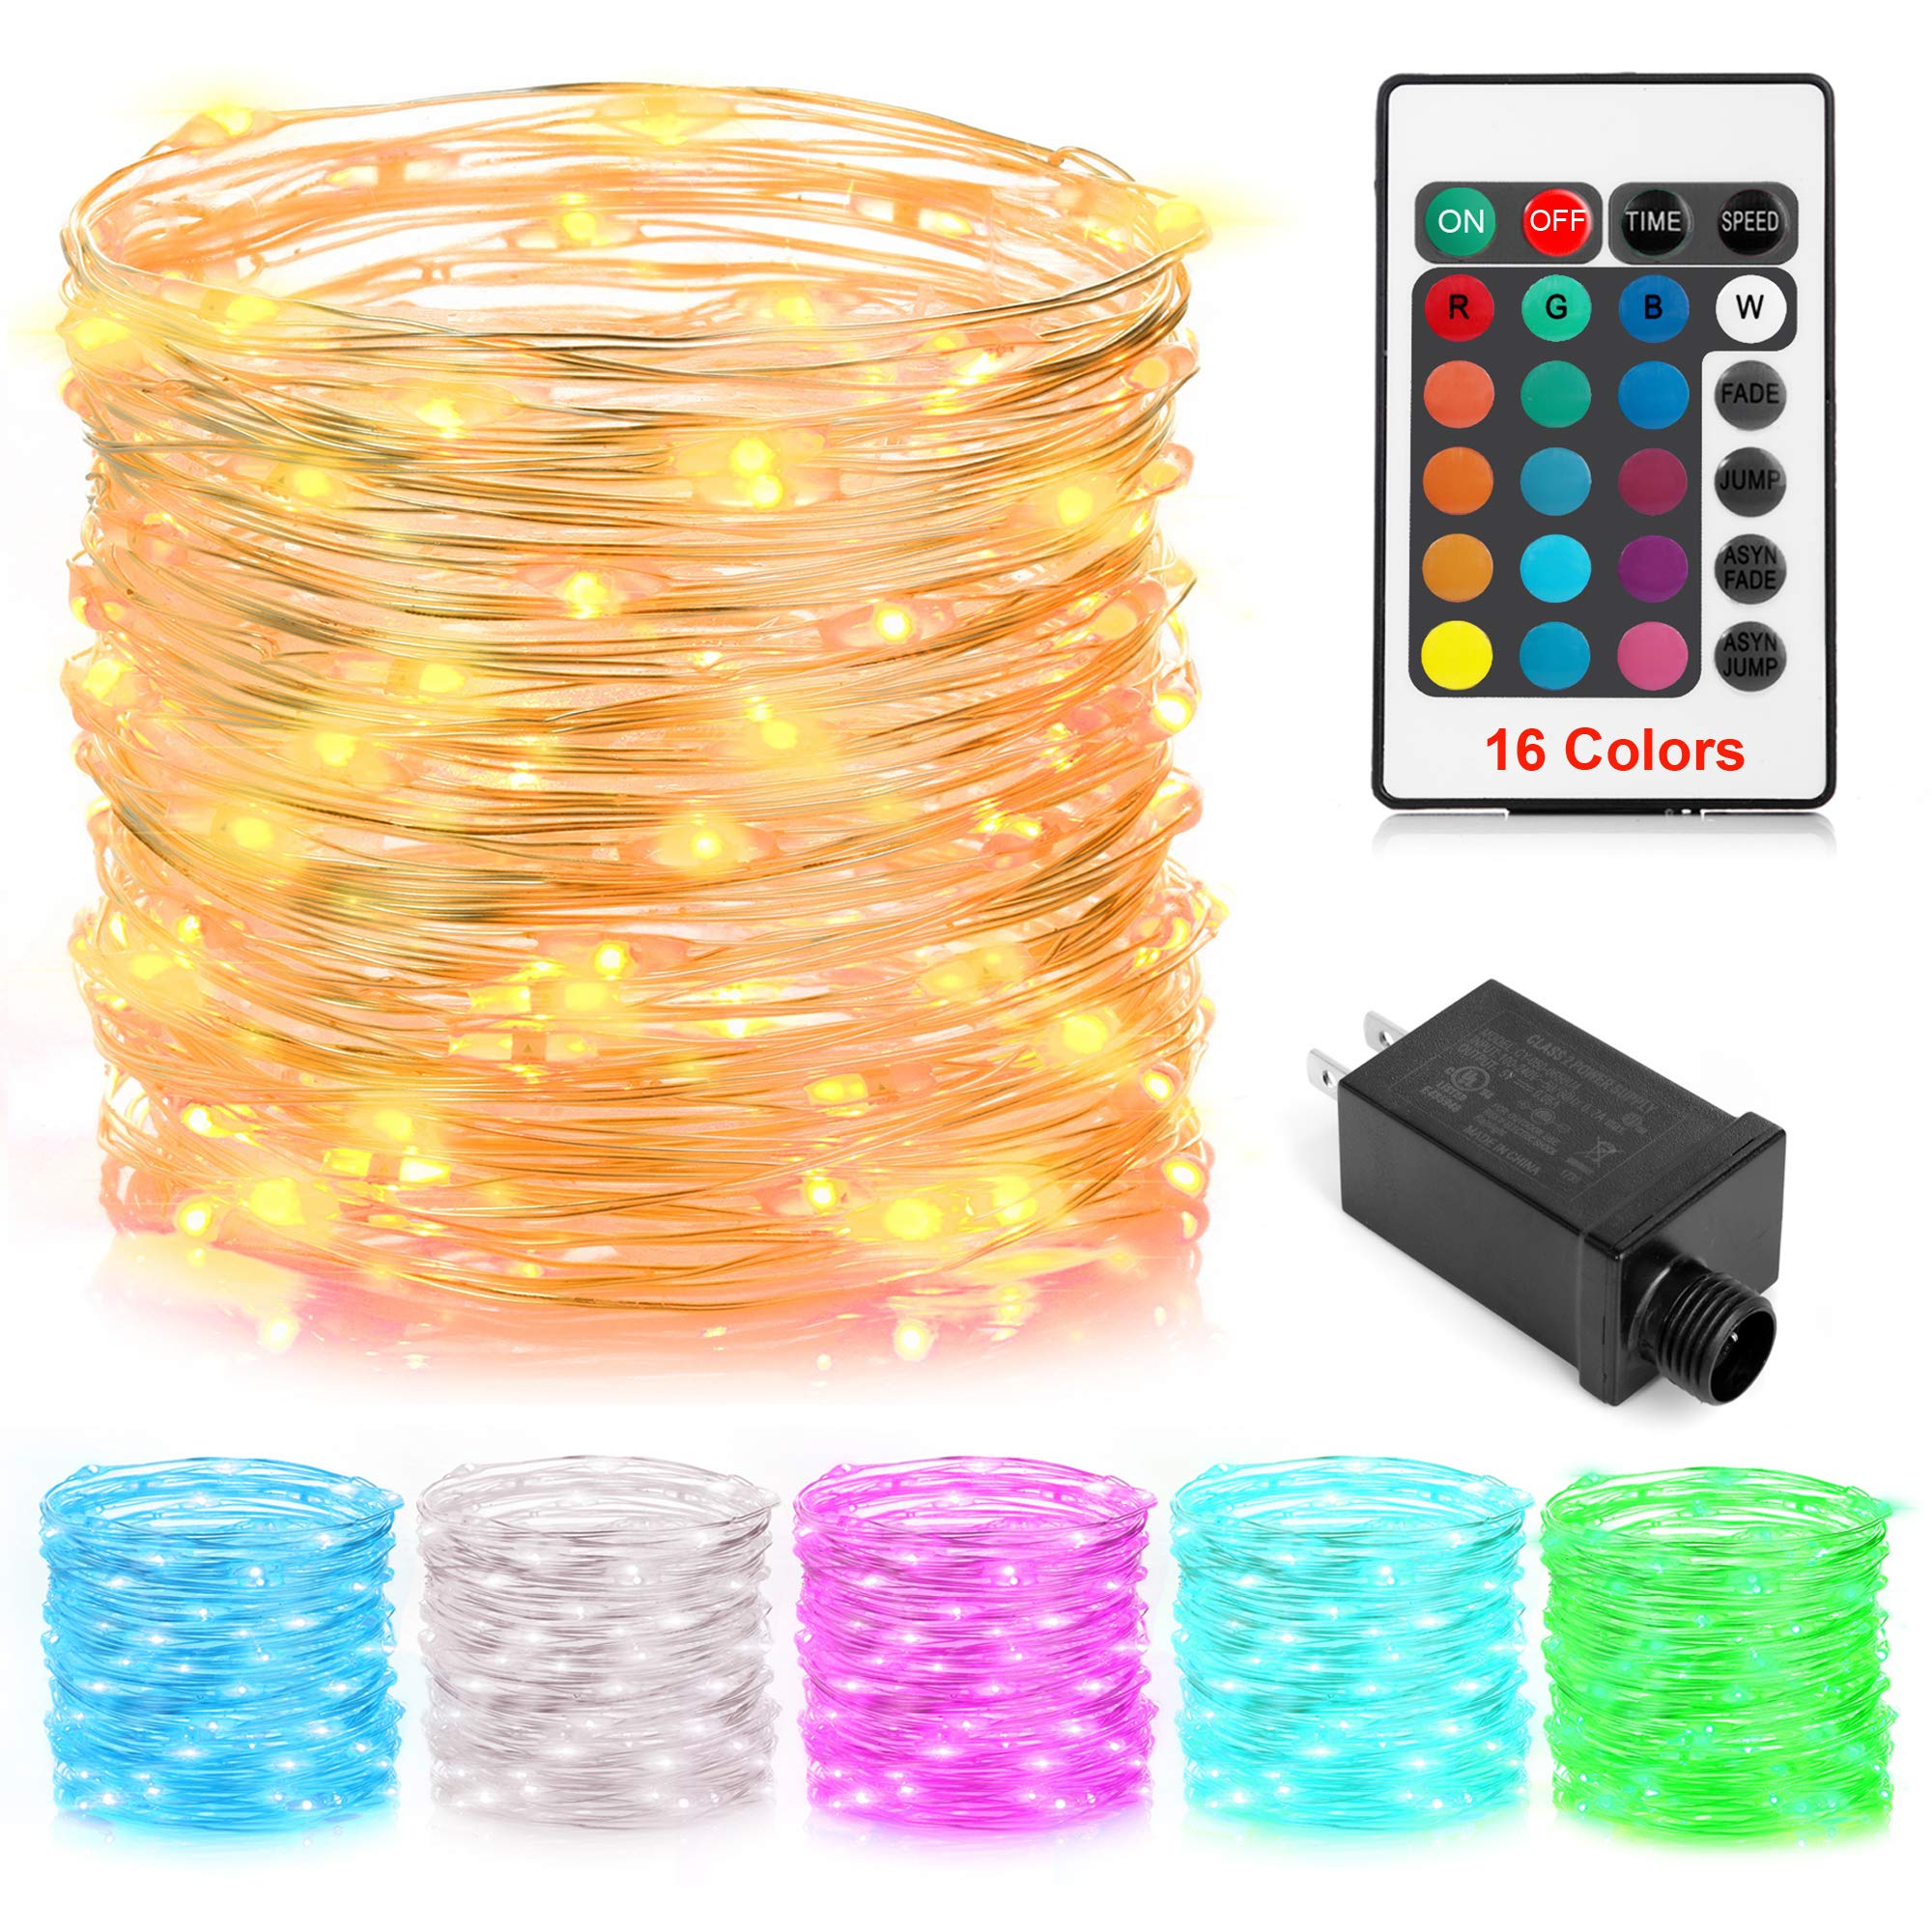 GDEALER 100 Led 16 Colors String Lights Electric Plug-in Multi Color Change String Lights Remote Fairy Lights with Timer 33ft Firefly Twinkle Lights for Bedroom Party Wedding Halloween Christmas Decor